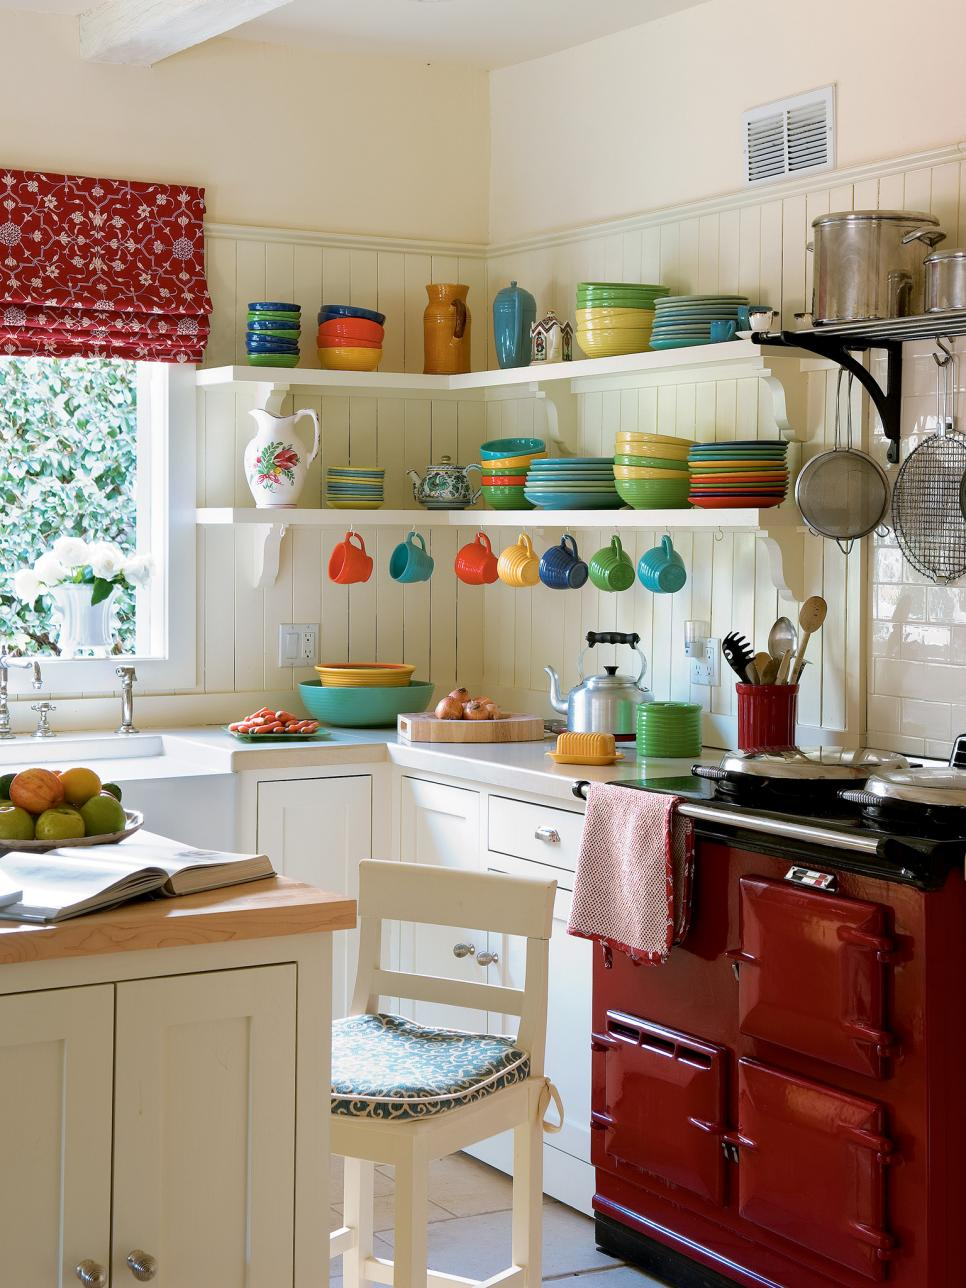 pictures of small kitchen design ideas from hgtv hgtv - Kitchen Design Ideas For Small Kitchens